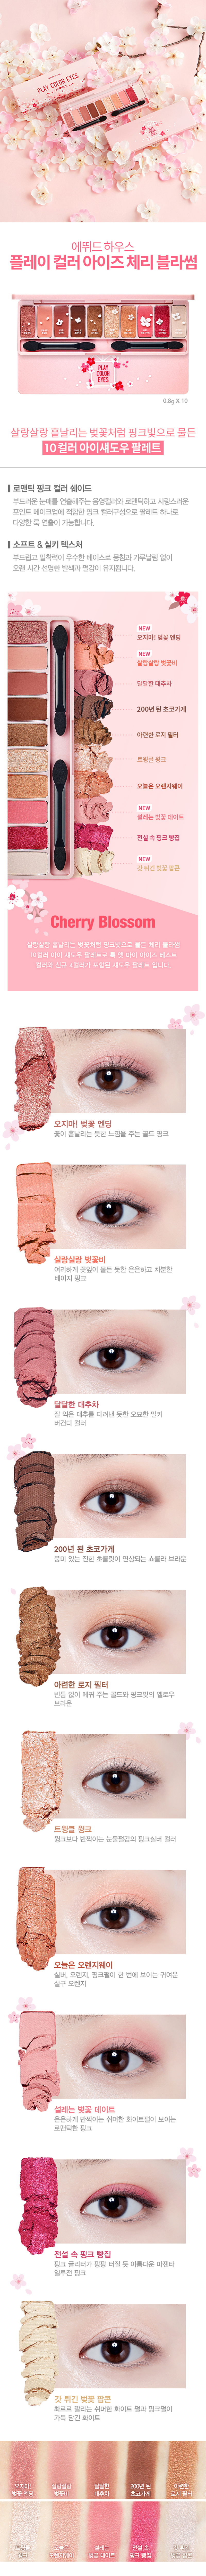 etude-house-play-color-eyes-cherry-blosssom-1.jpg